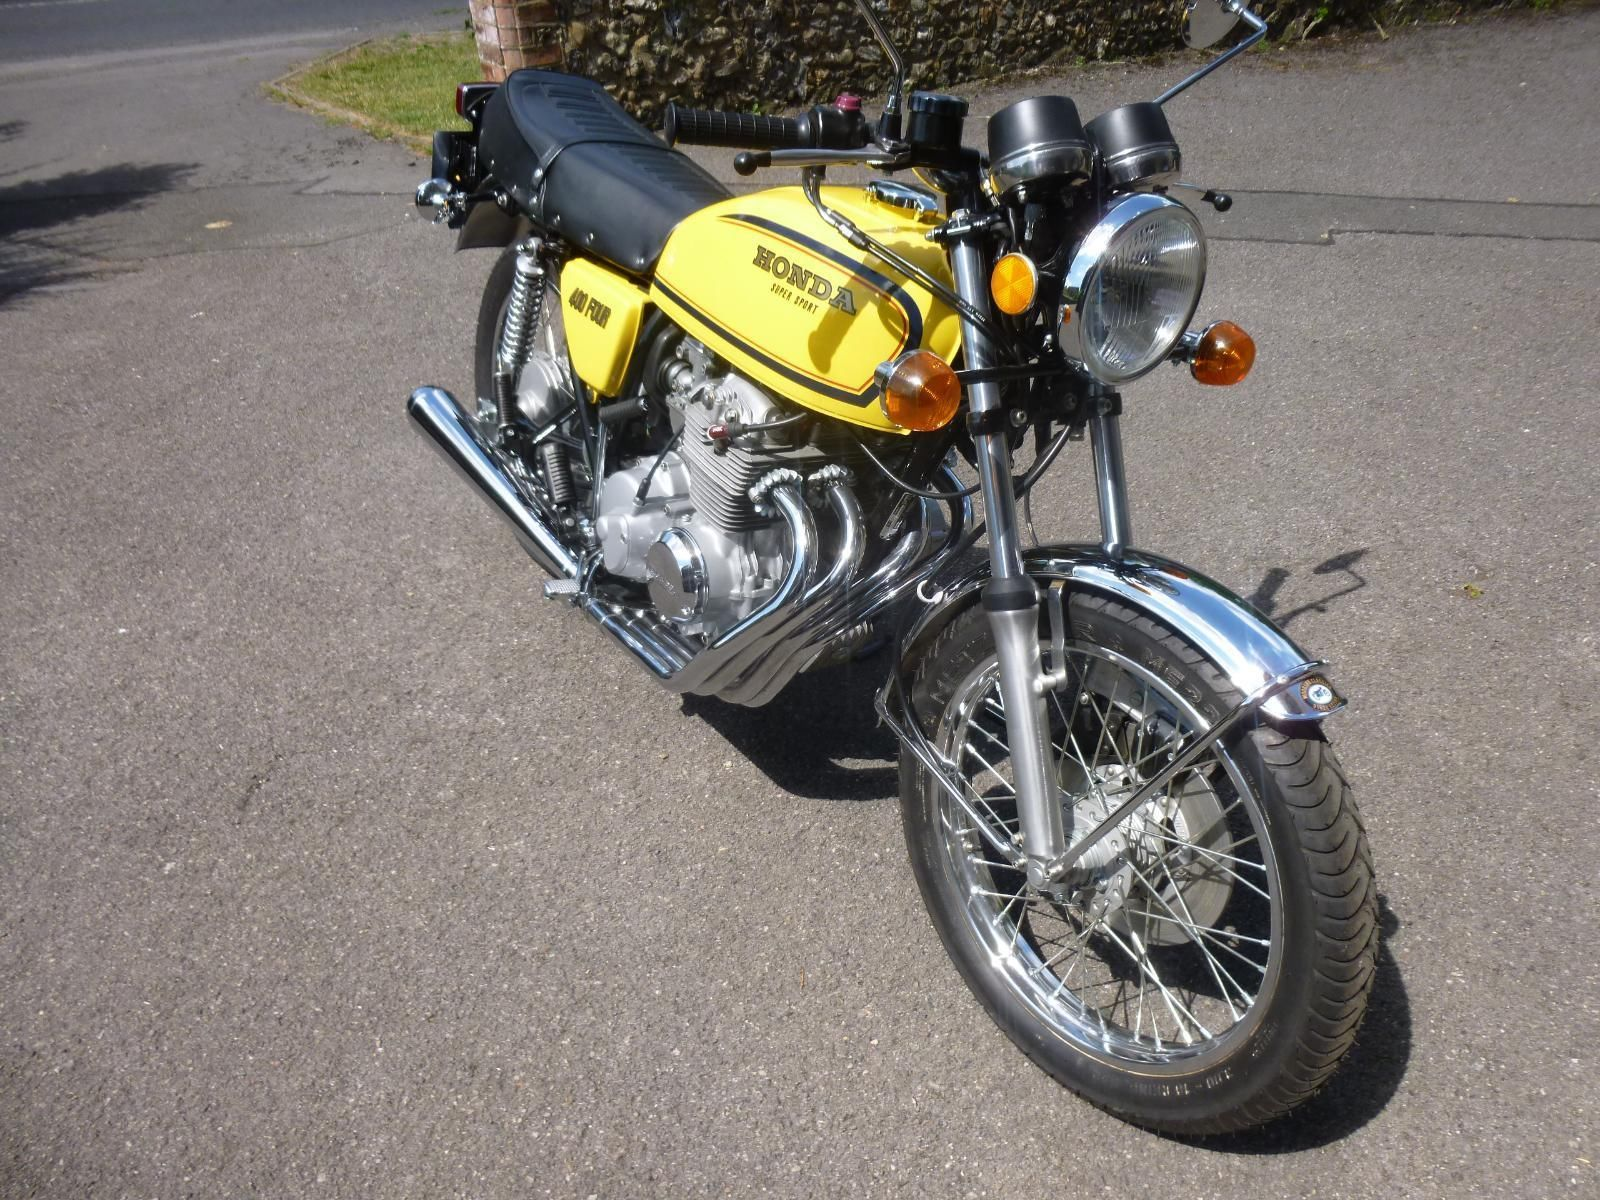 Honda CB400/4 - 1976 - Motor and Transmission, Downpipes, Forks and Wheel.